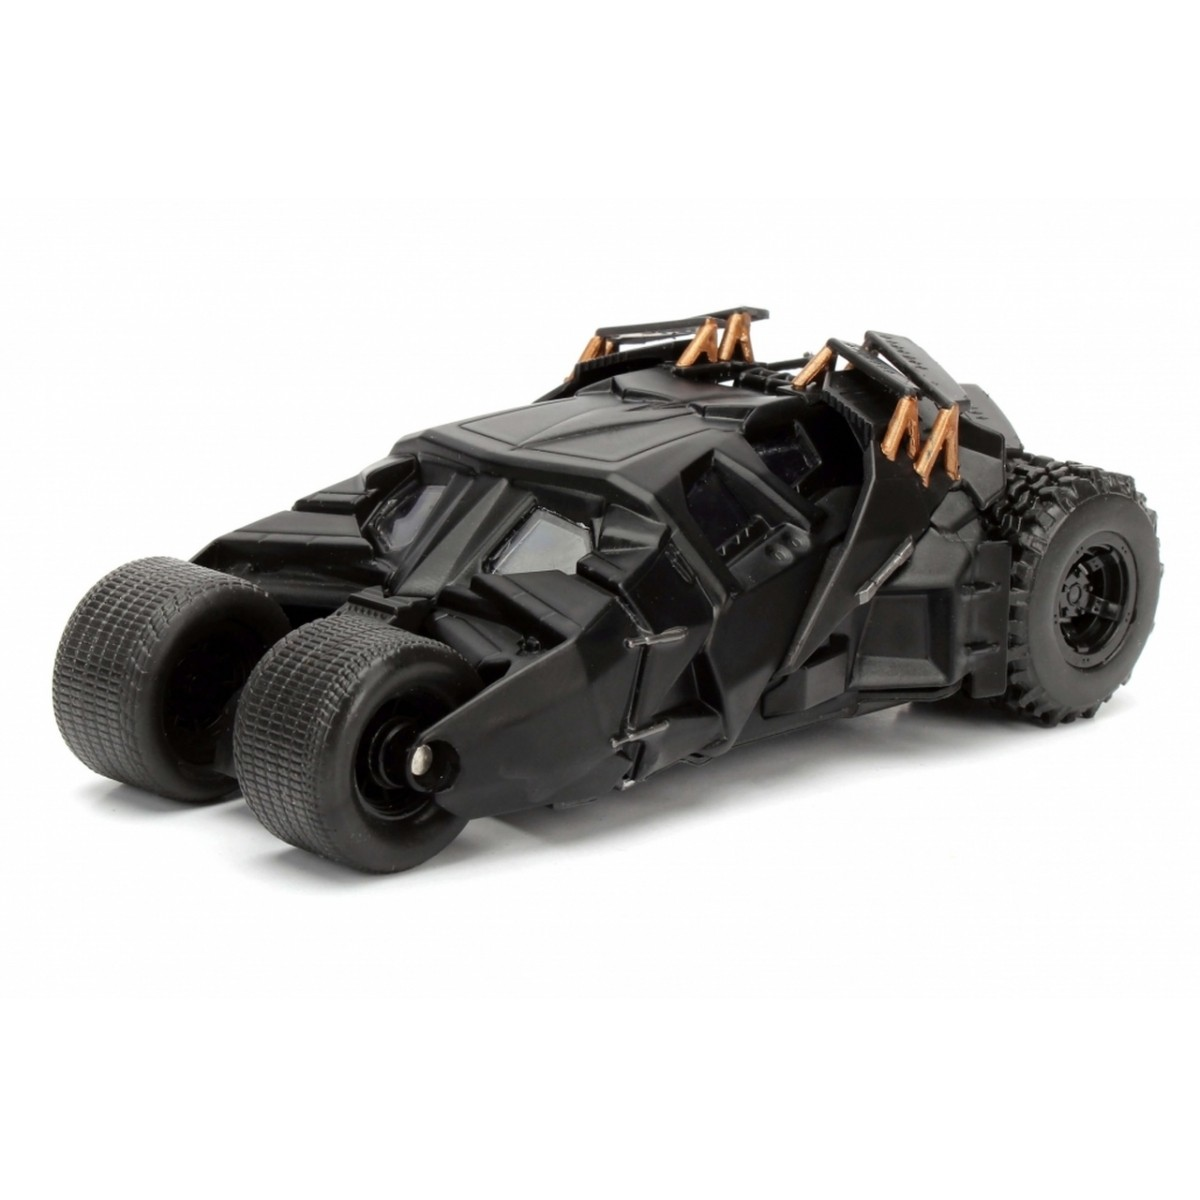 Metals Die Cast Batmobile The Dark Knight: Batman: O Cavaleiro das Trevas Escala 1/32